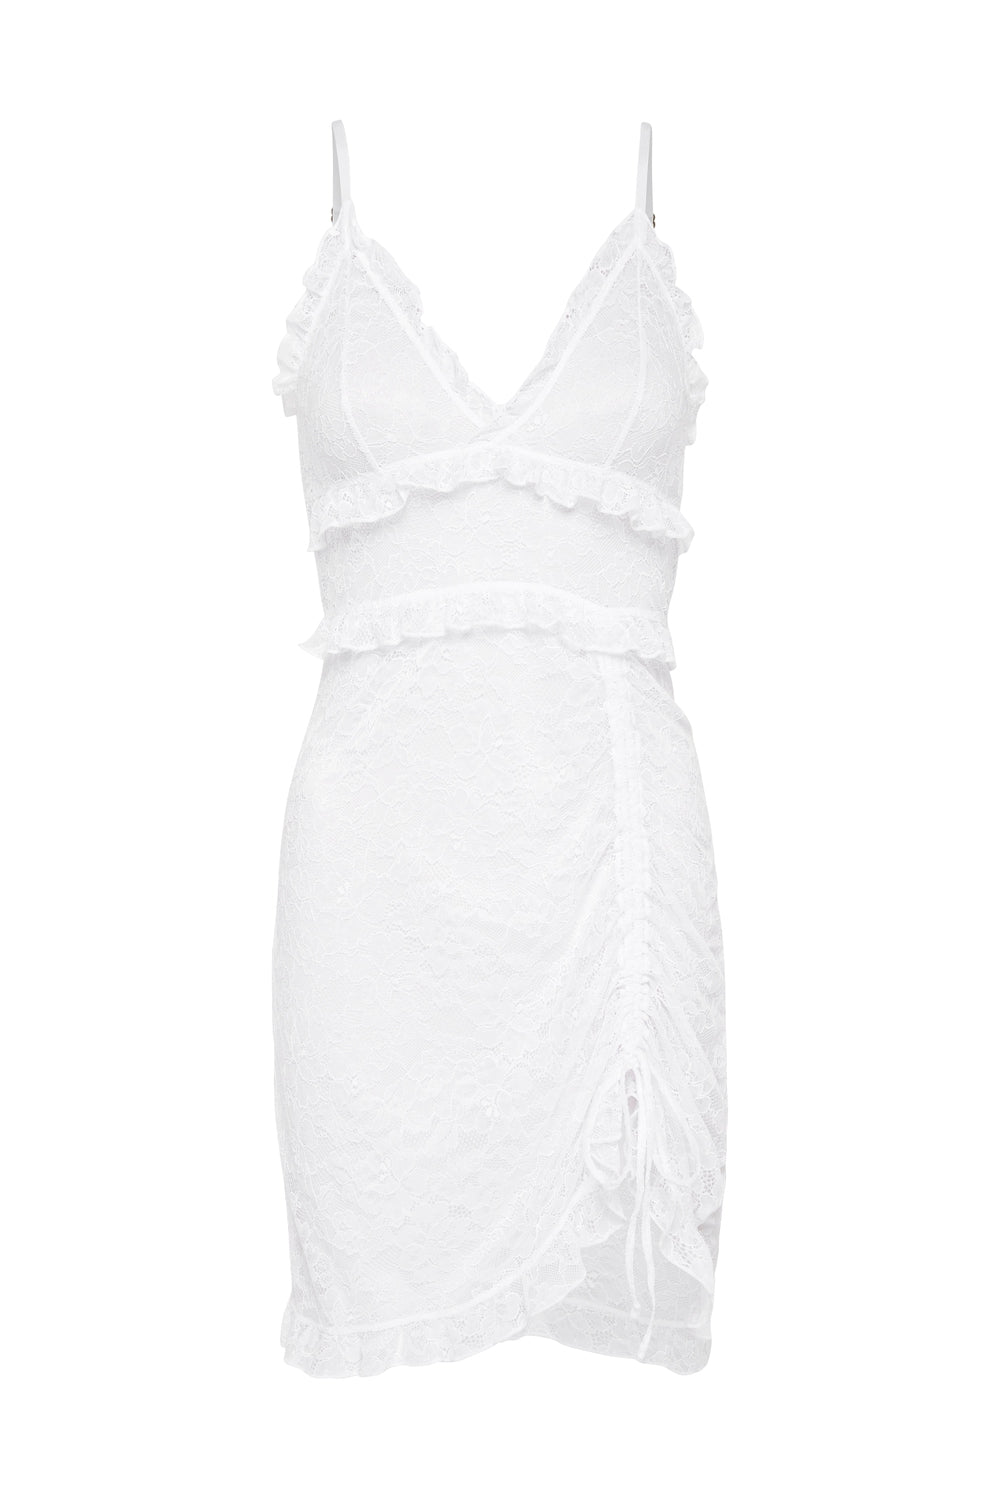 Cherry Slip Dress in White